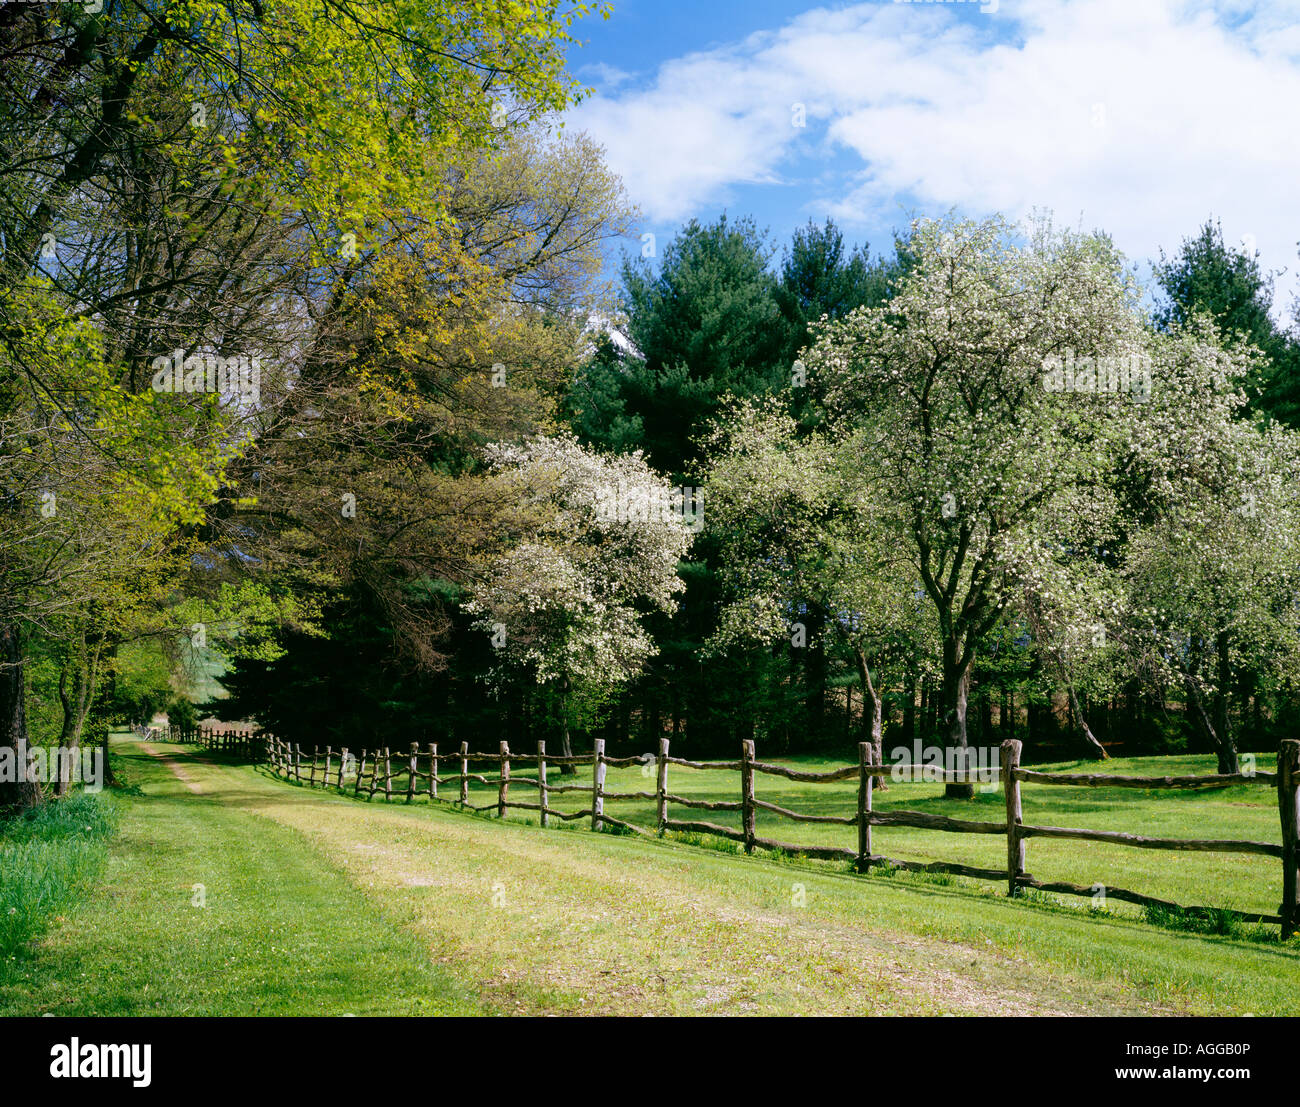 ROLLING ROCK GAME PRESERVE; OWNED BY MELLON FAMILY OF PITTSBURGH, WESTMORELAND COUNTY, PENNSYLVANIA, USA - Stock Image